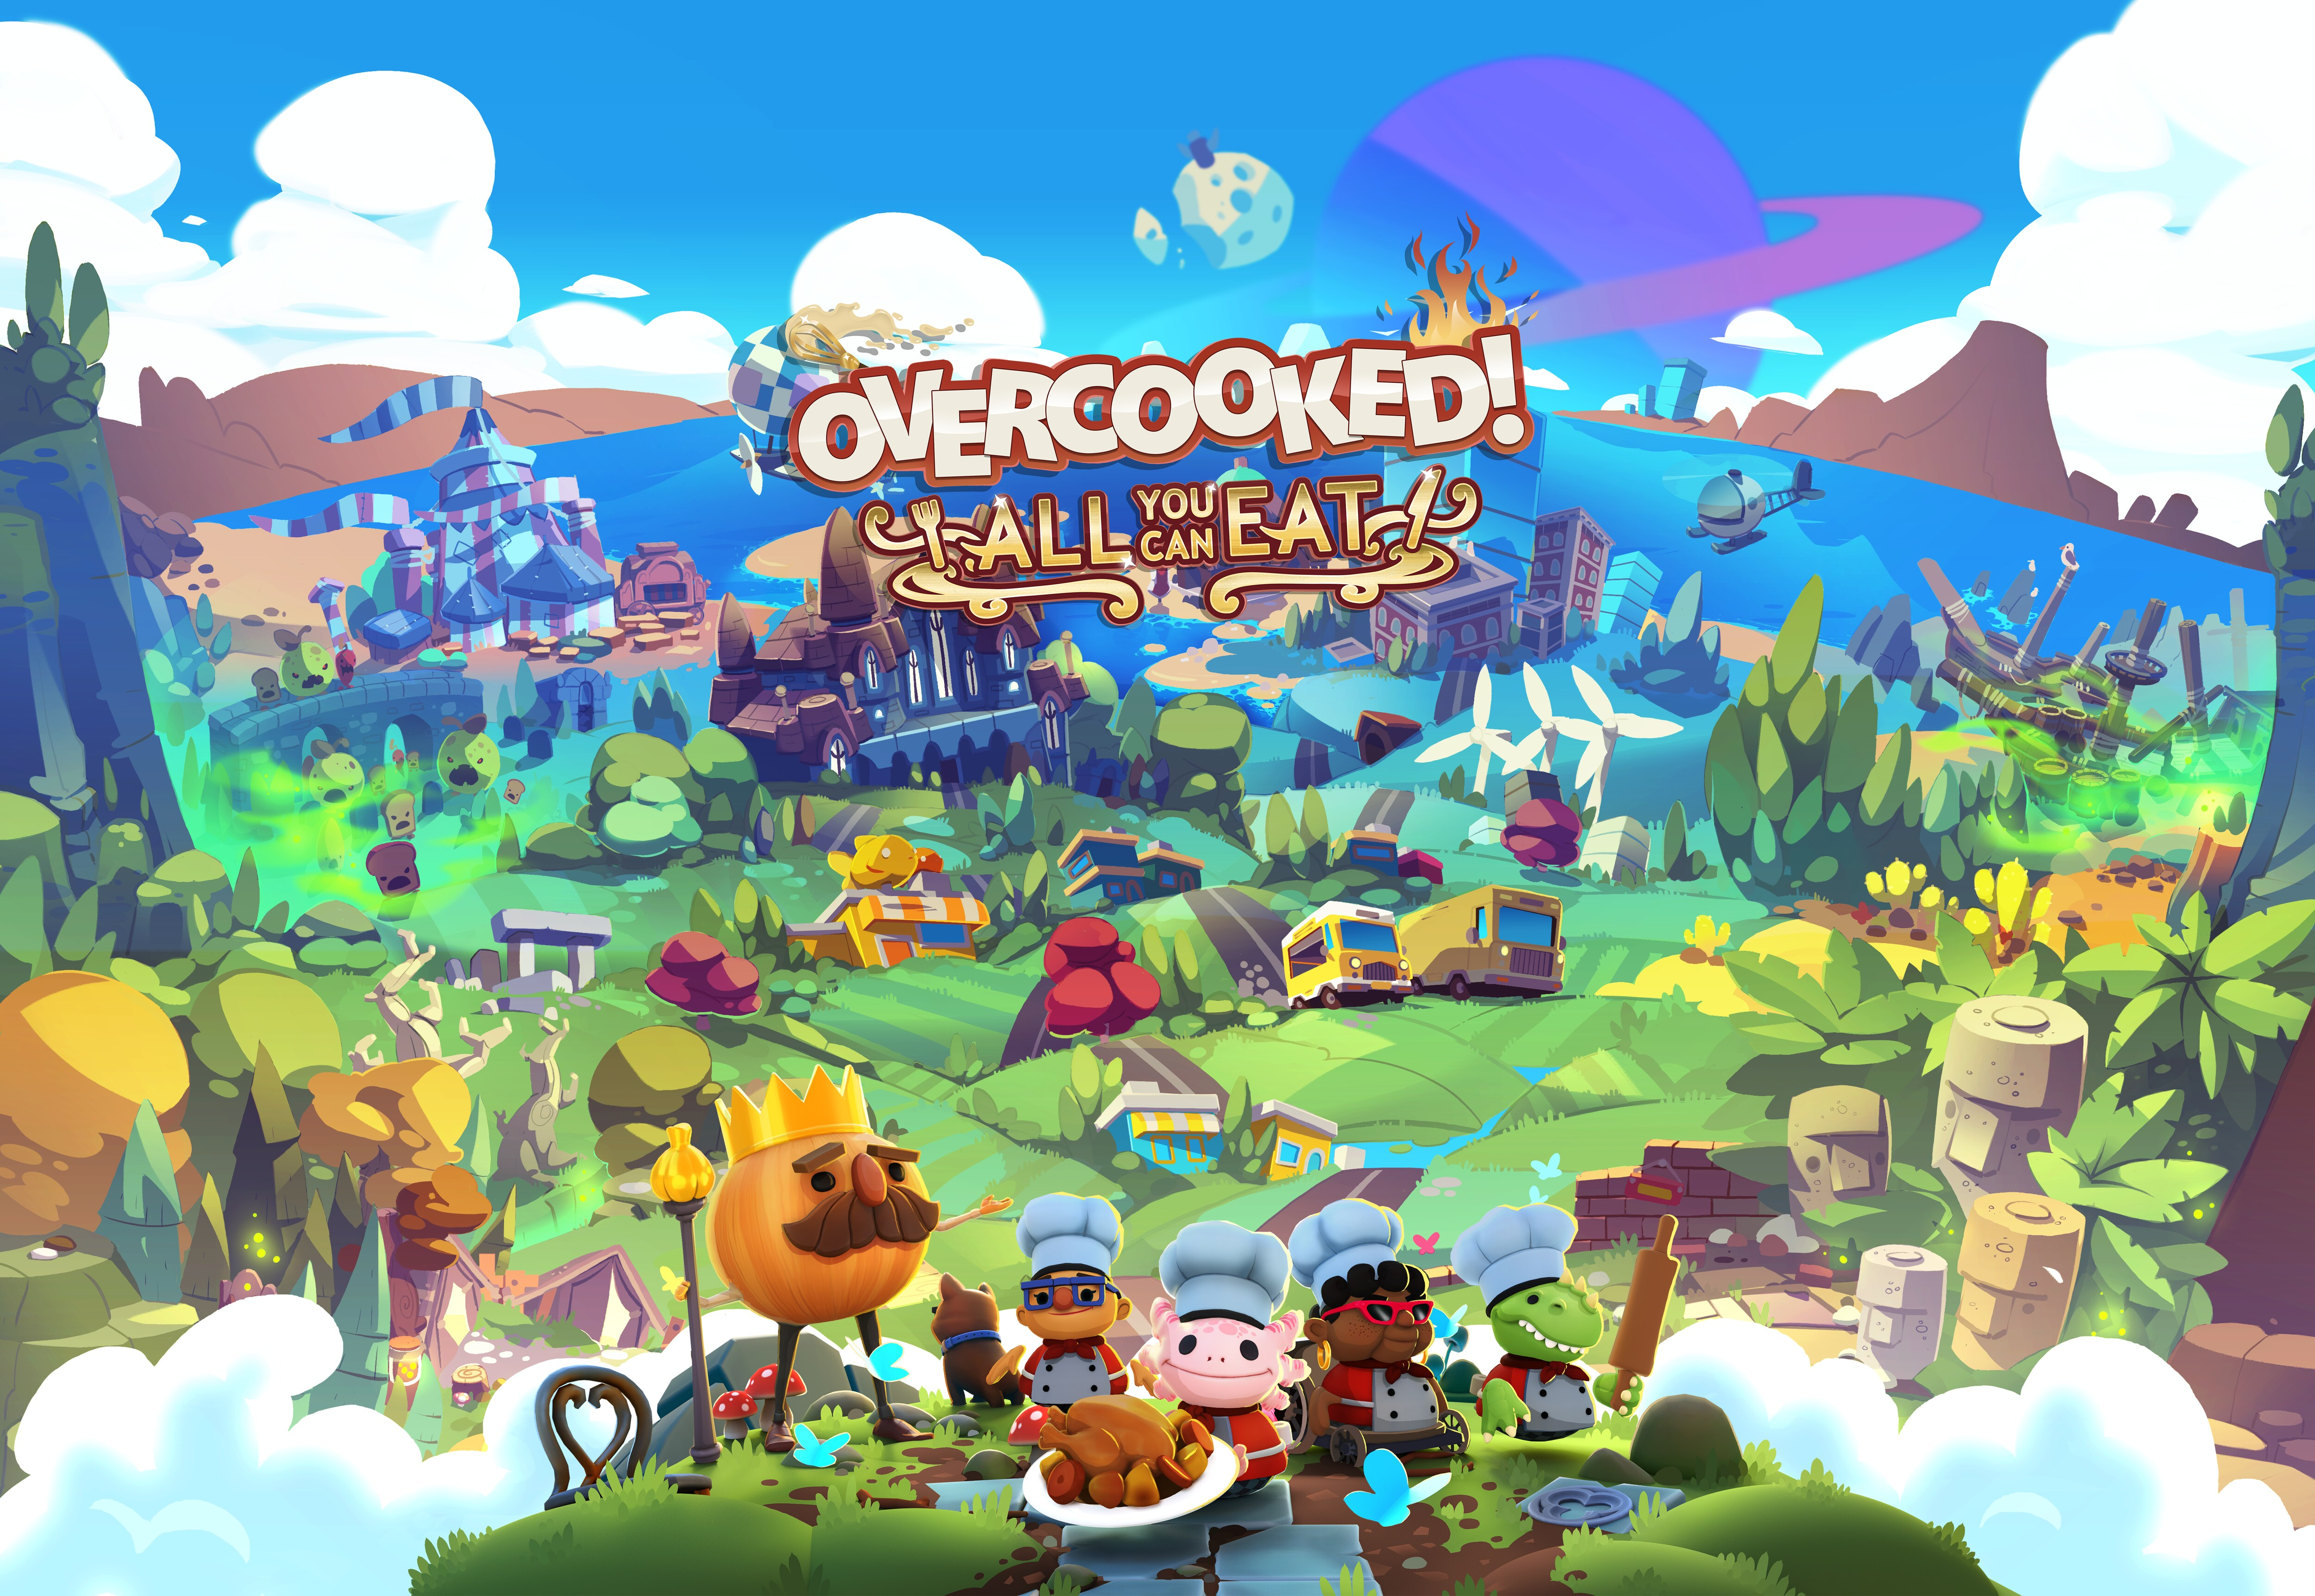 Big landscape of Overcooked characters